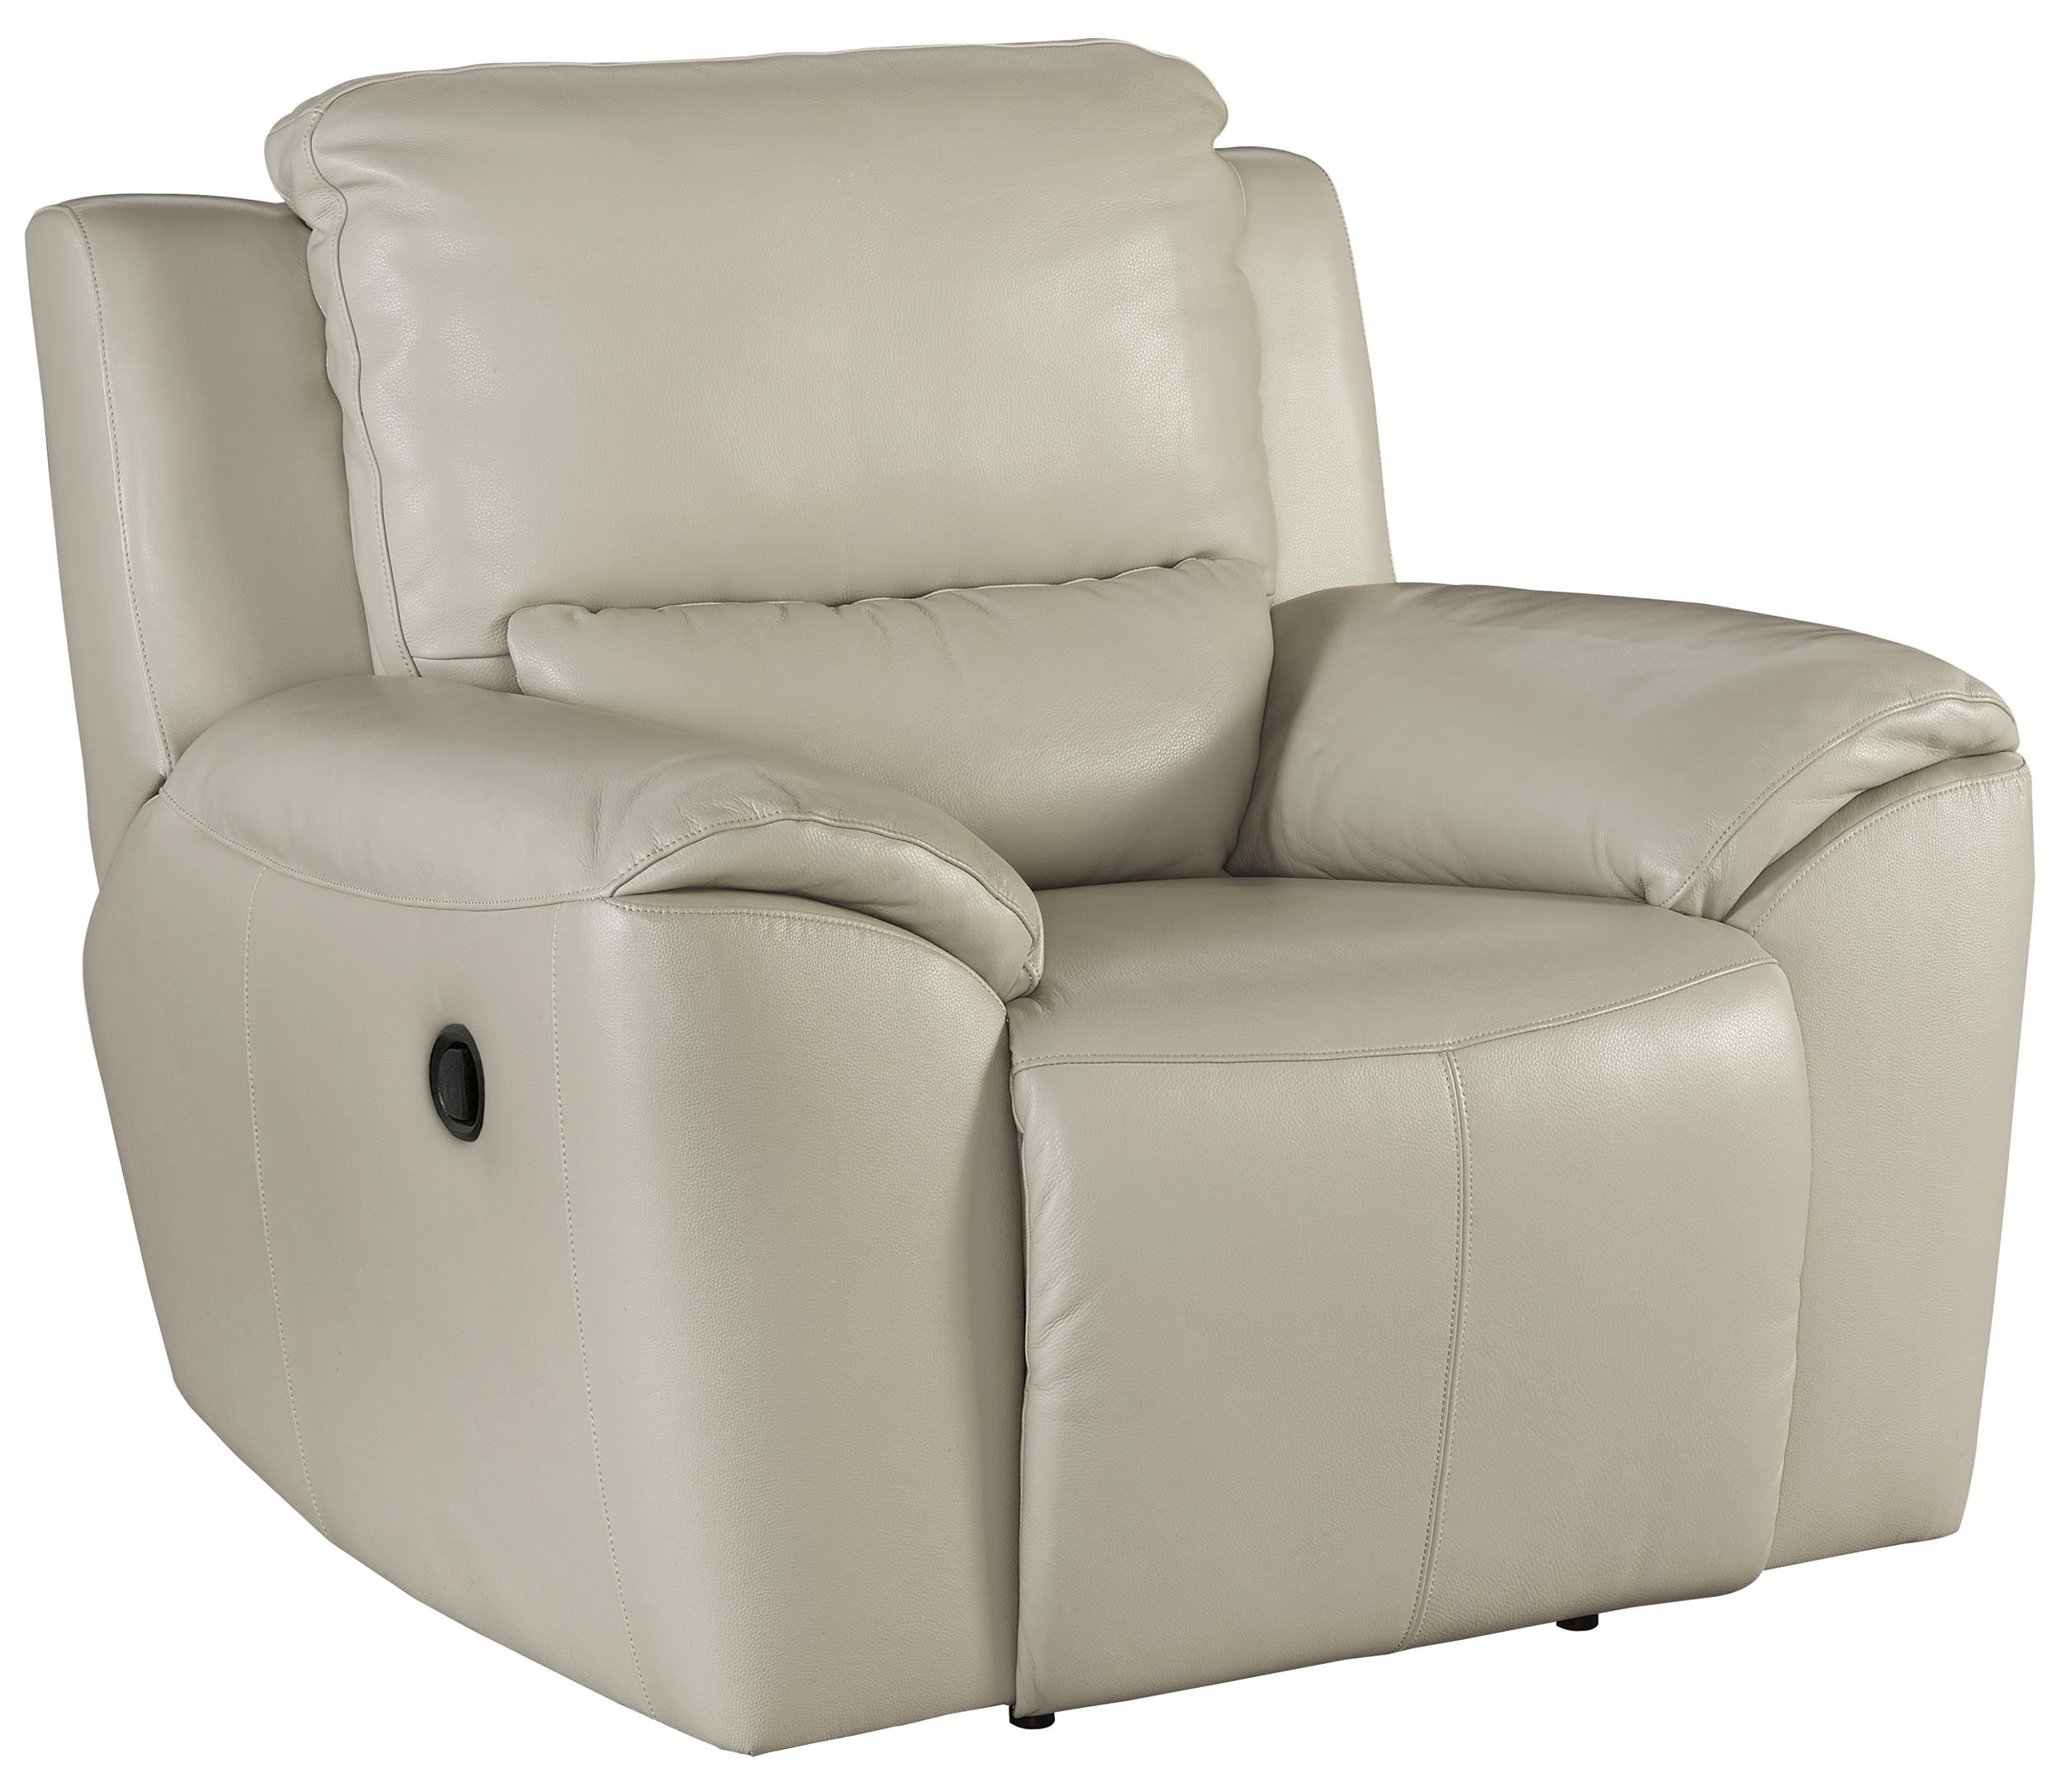 Signature Design by Ashley Valeton Zero Wall Recliner - Item Number: U7350029